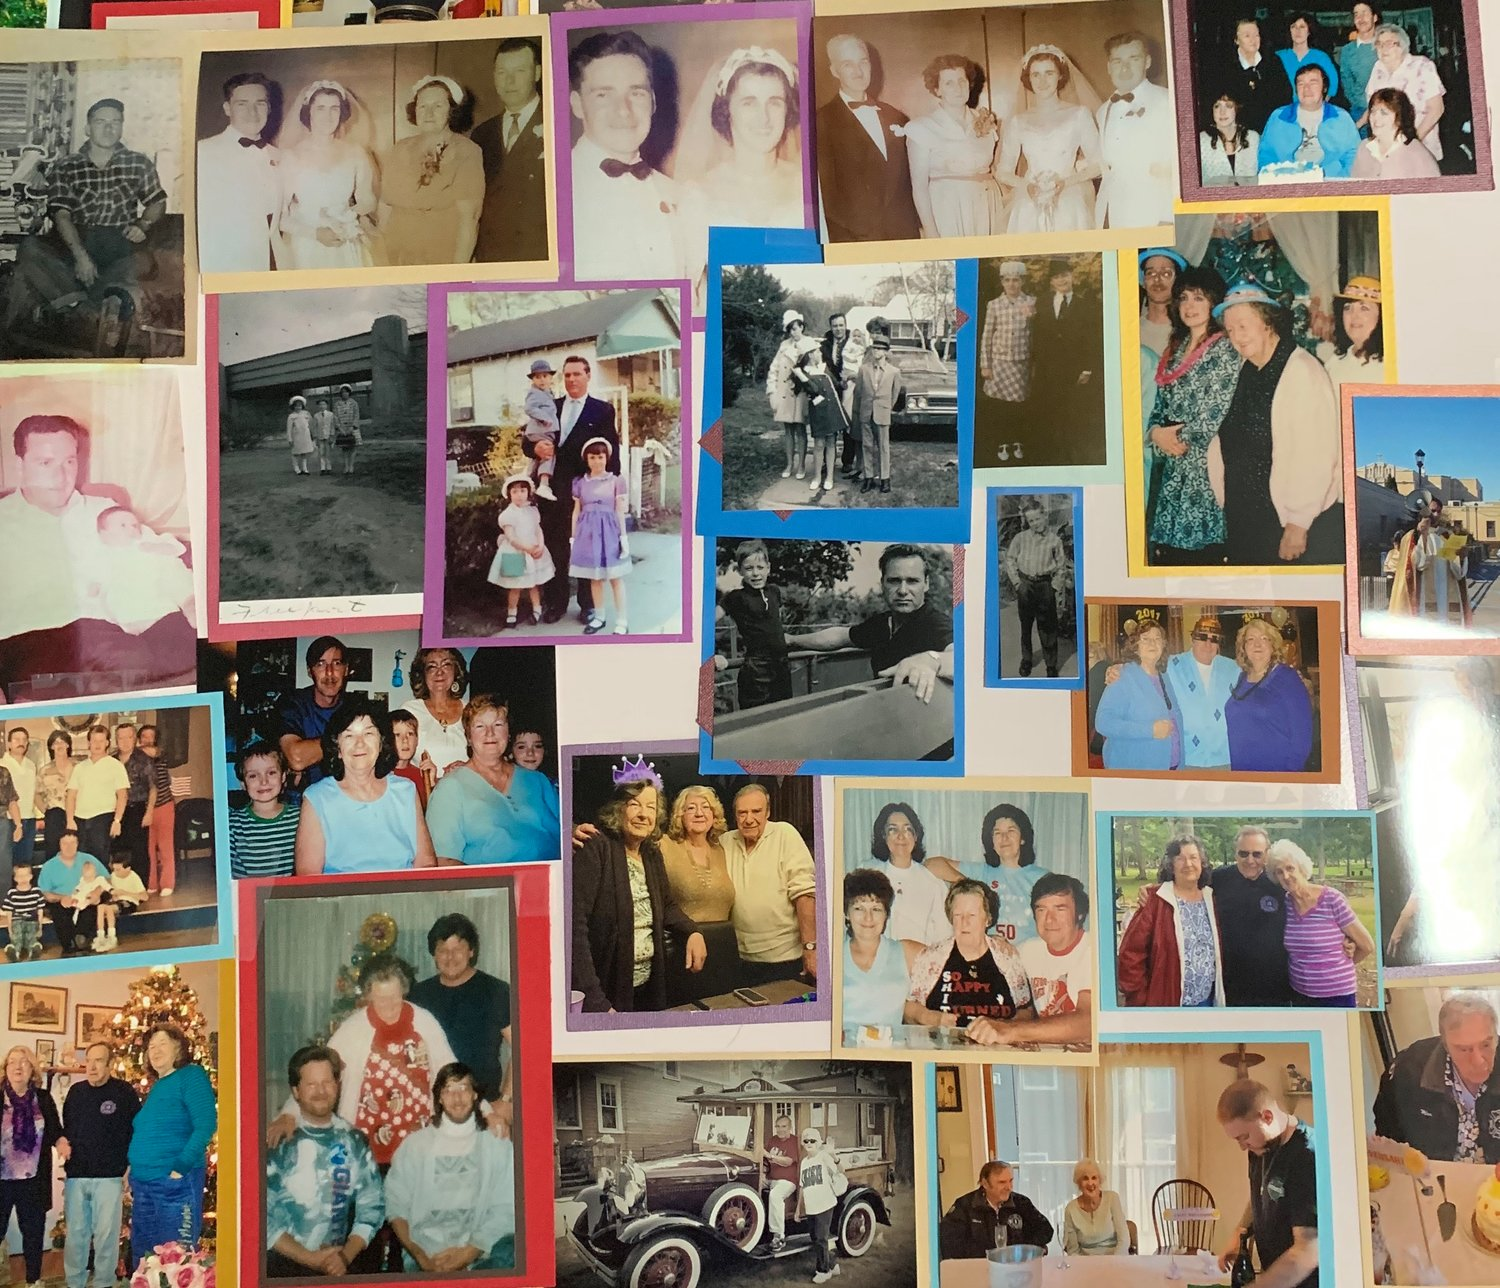 The family of Abrams compiled pictures taken throughout his life into a collage